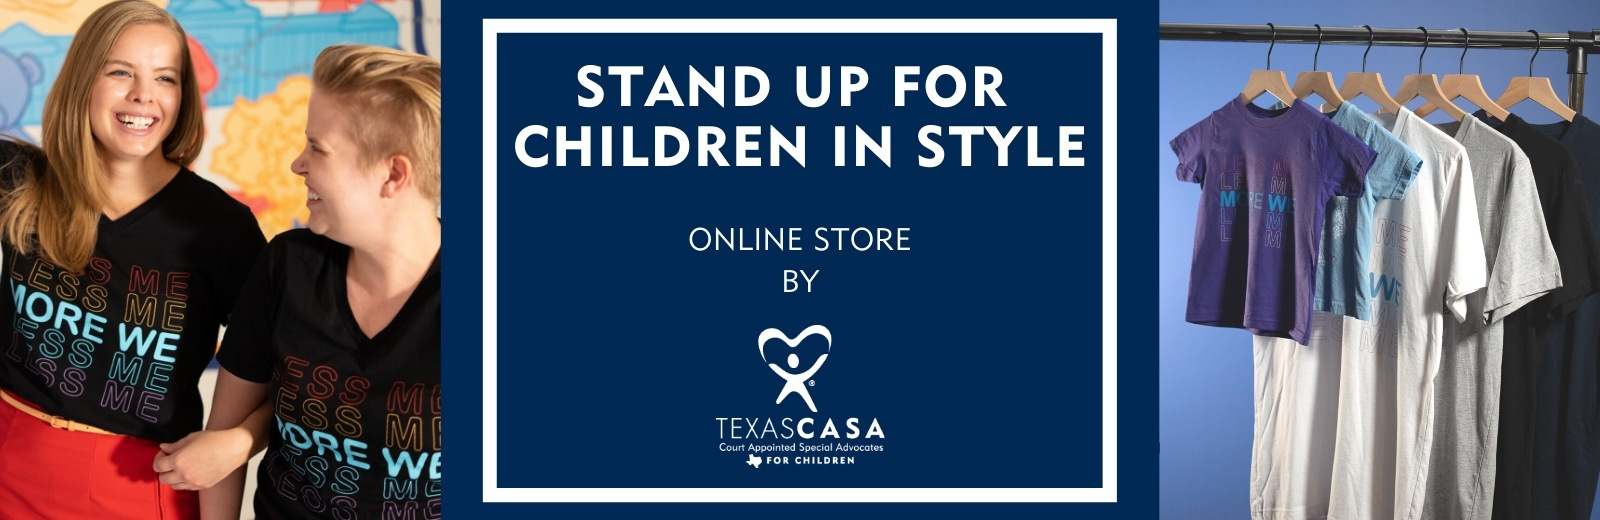 Stand Up for Children in Style Store